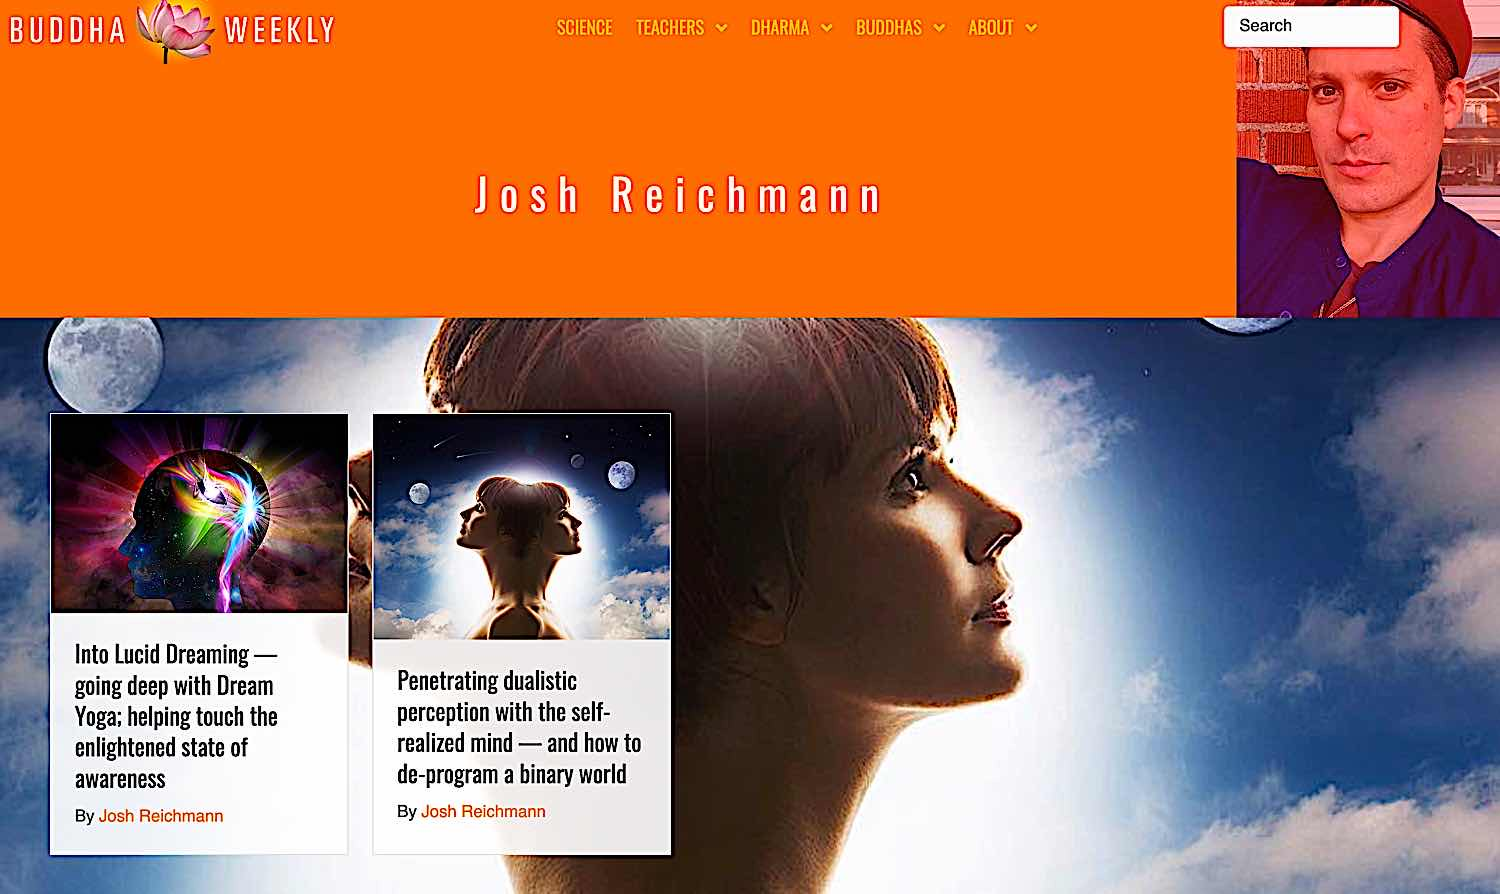 Buddha Weekly More features by Josh Reichmann Buddhism